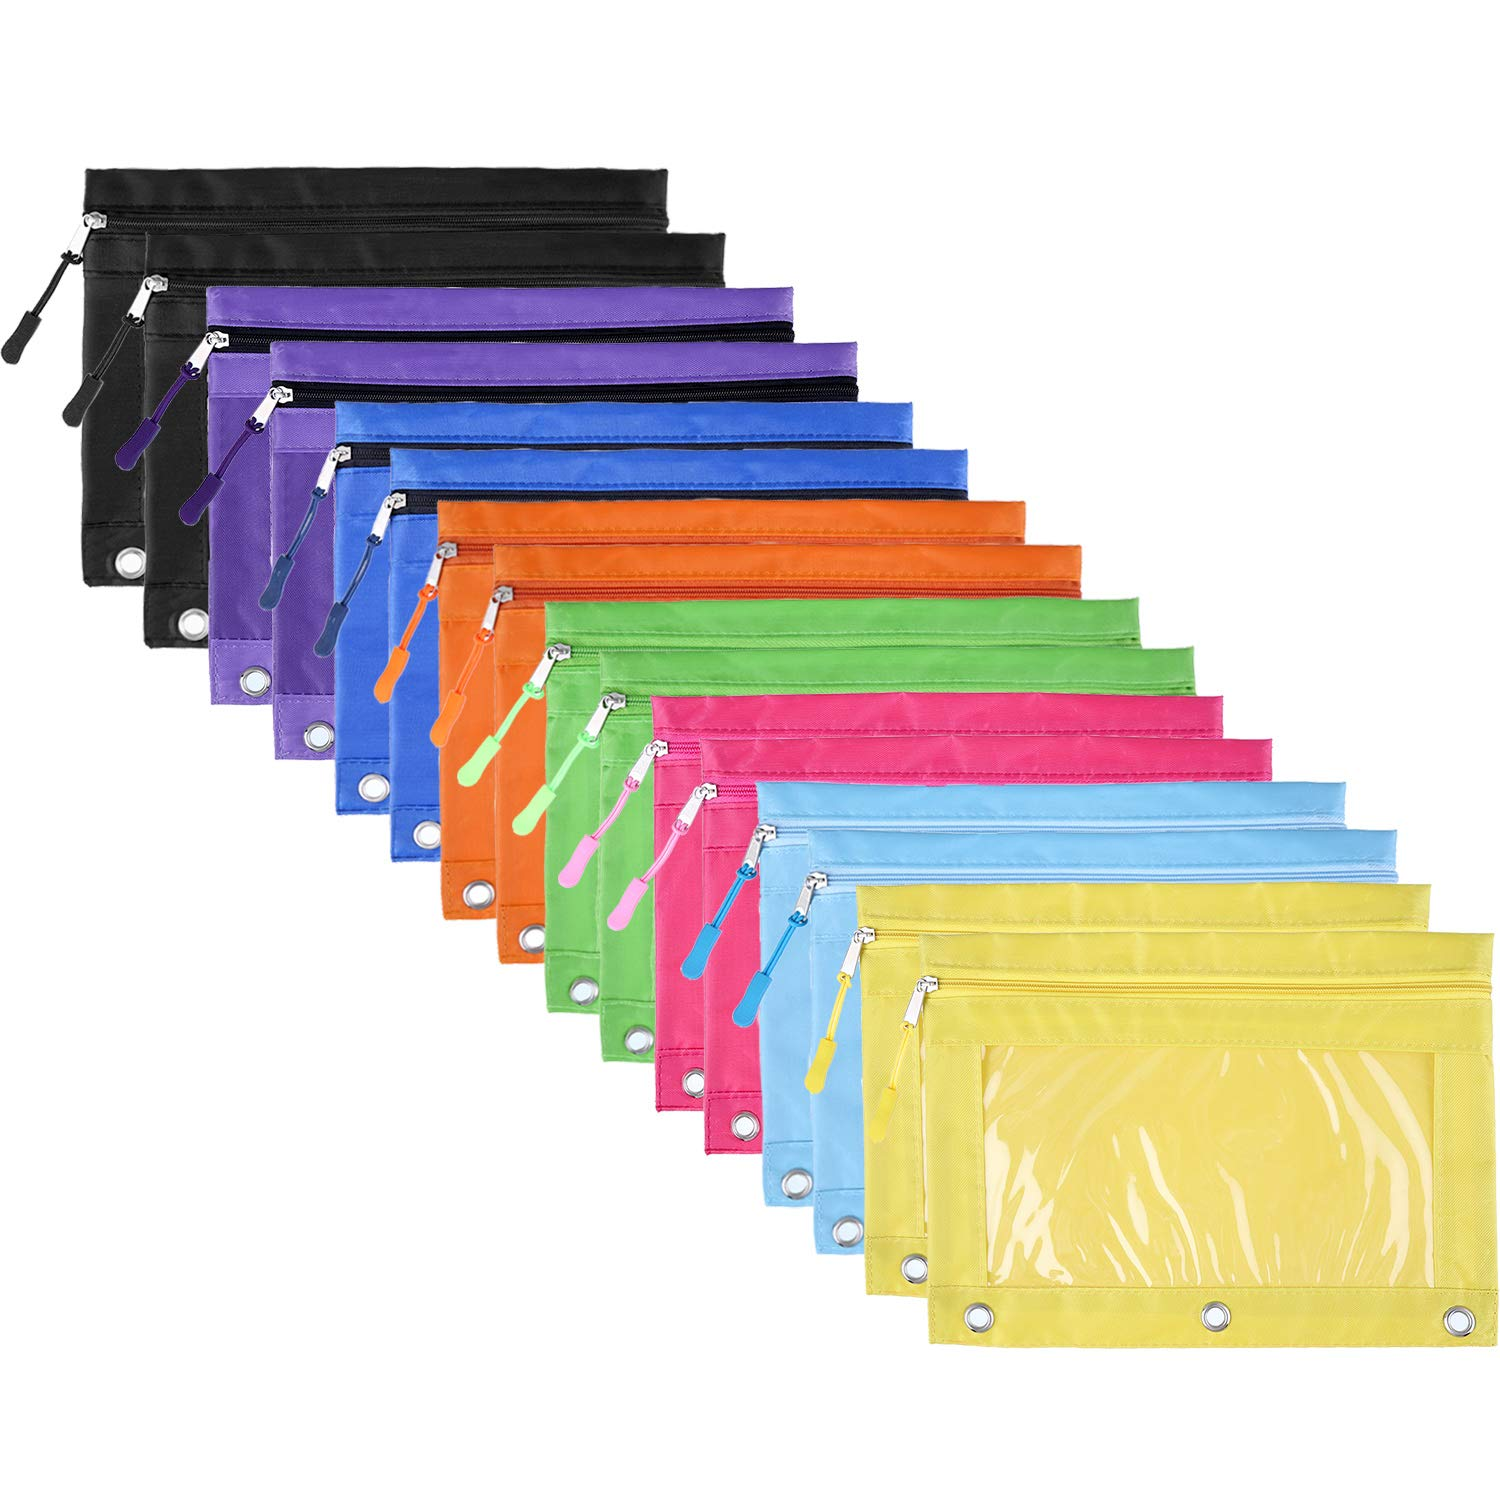 BBTO Pencil Pouch 3 Ring Binder Pencil Bags with Zipper Pulls for Office School Supplies, 8 Colors (16)